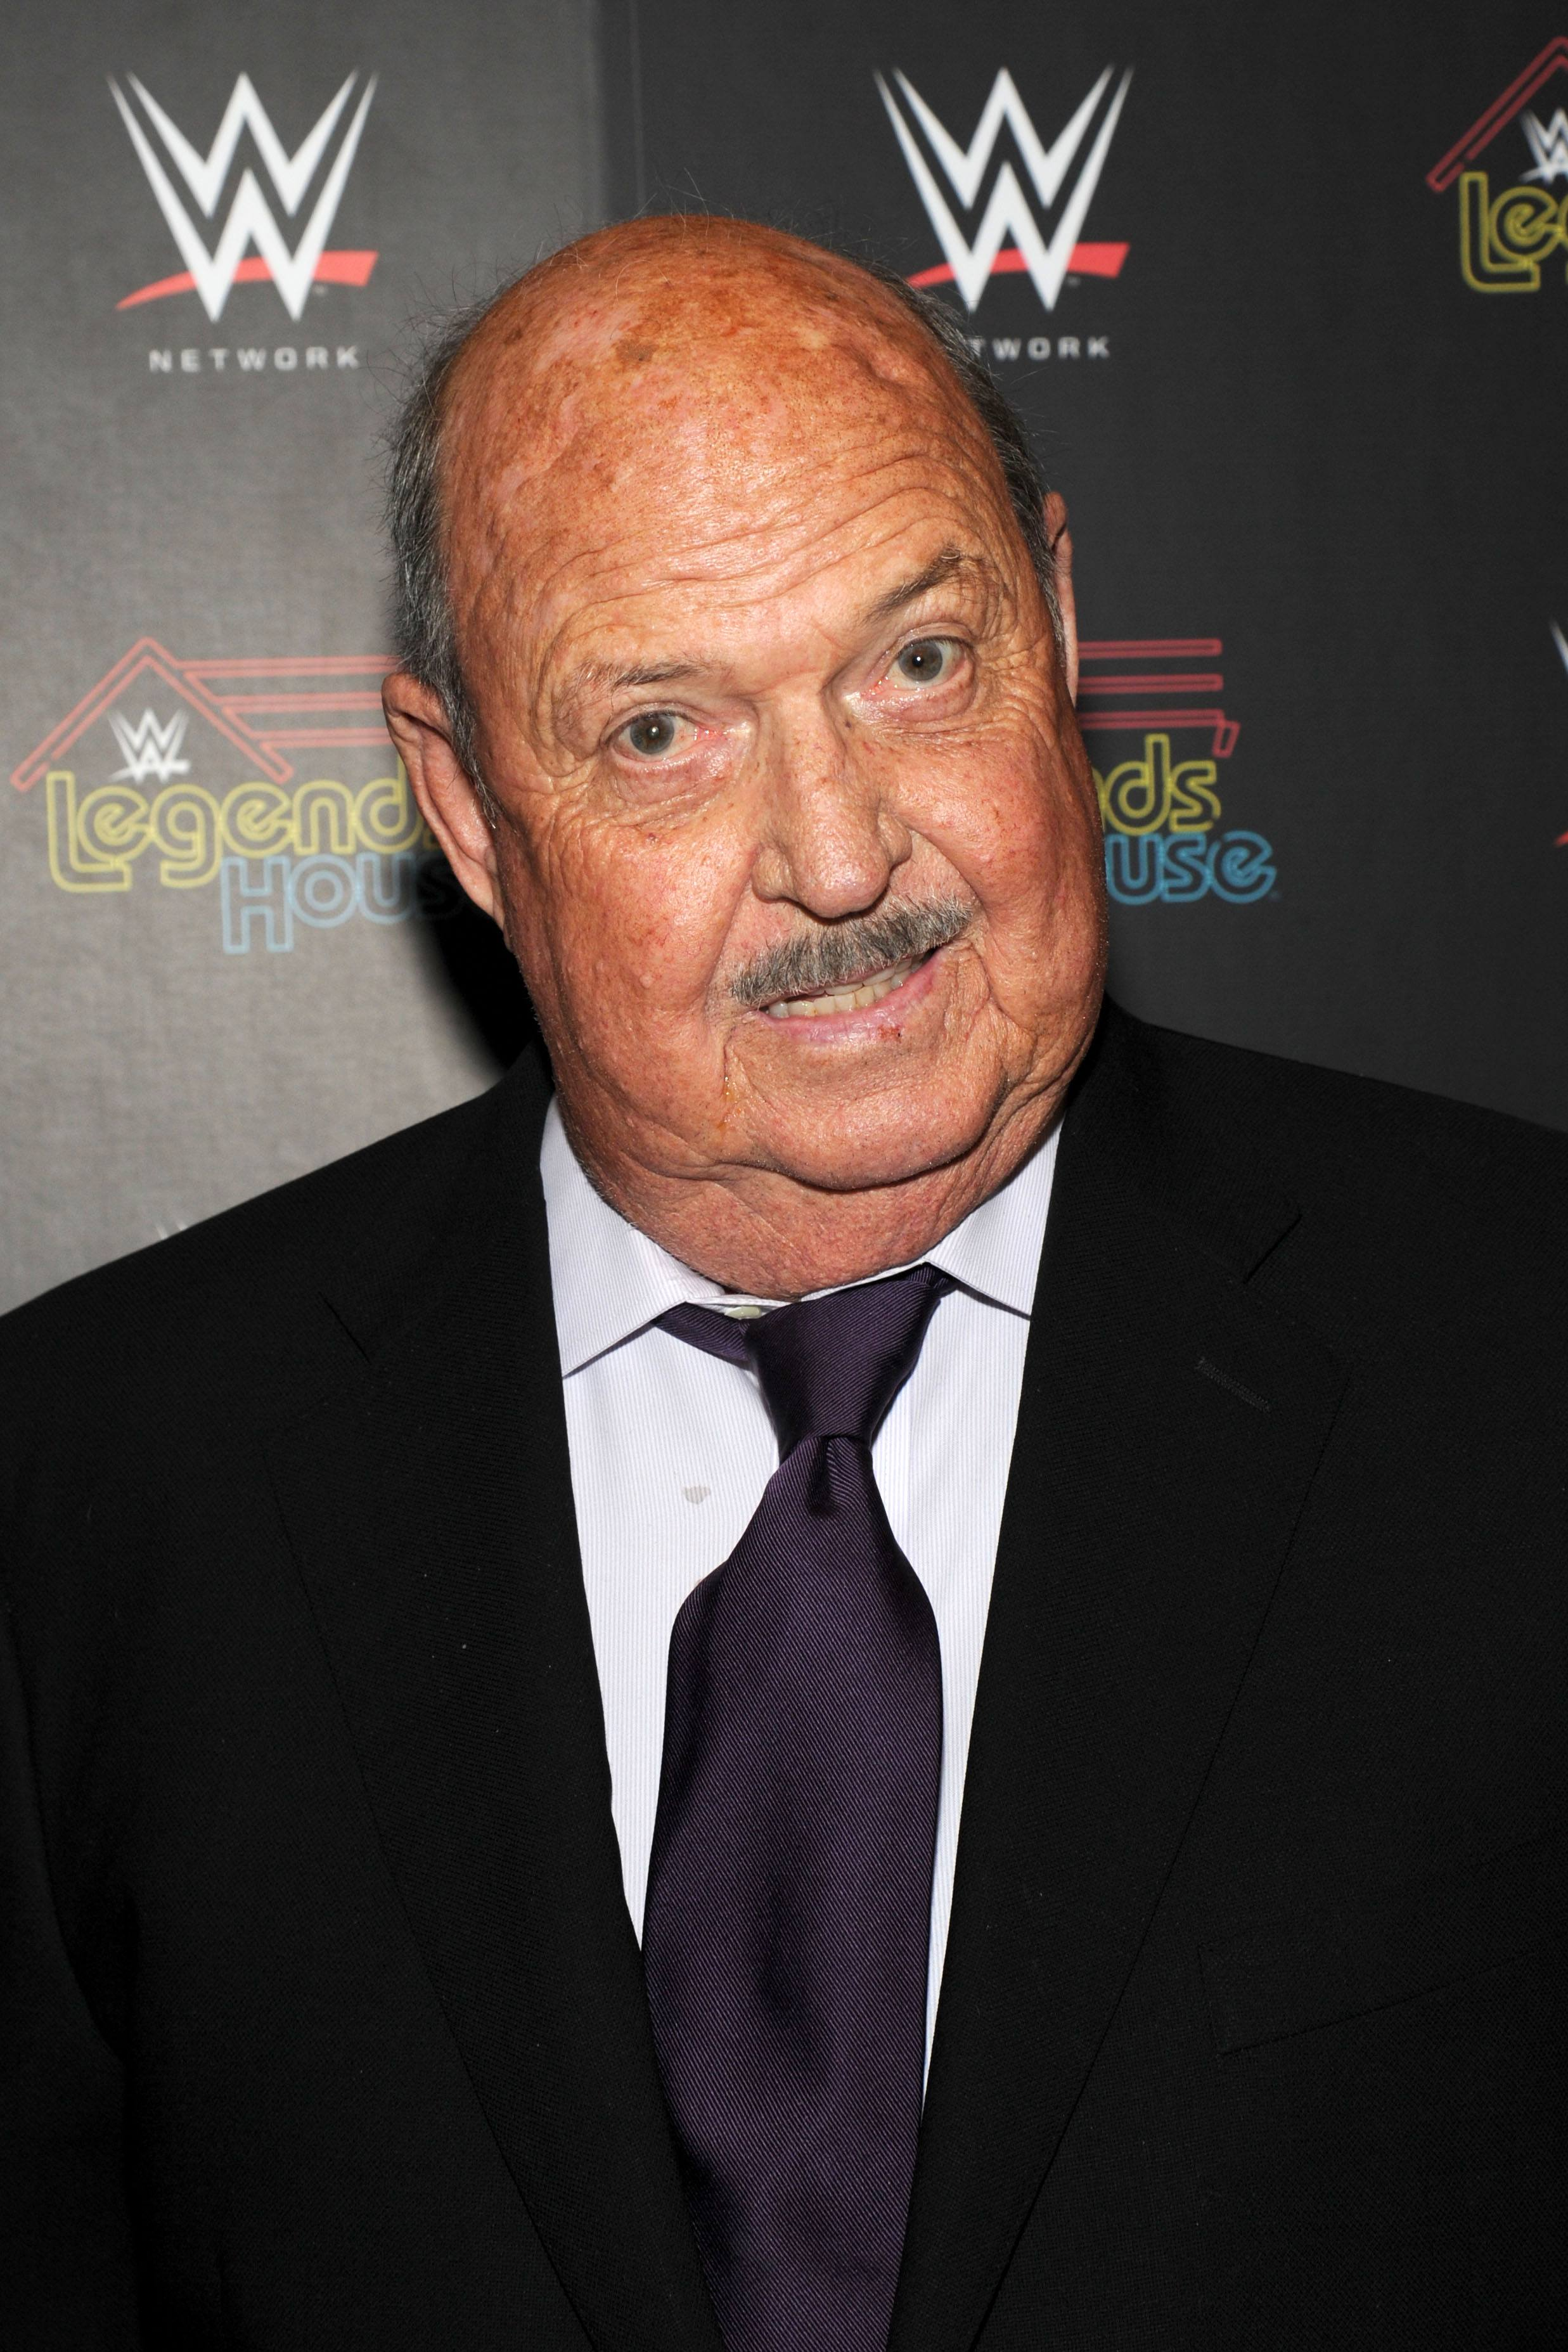 """Gene Okerlund attends the WWE screening of """"Legends' House"""" at Smith & Wollensky on April 15, 2014 in New York City."""